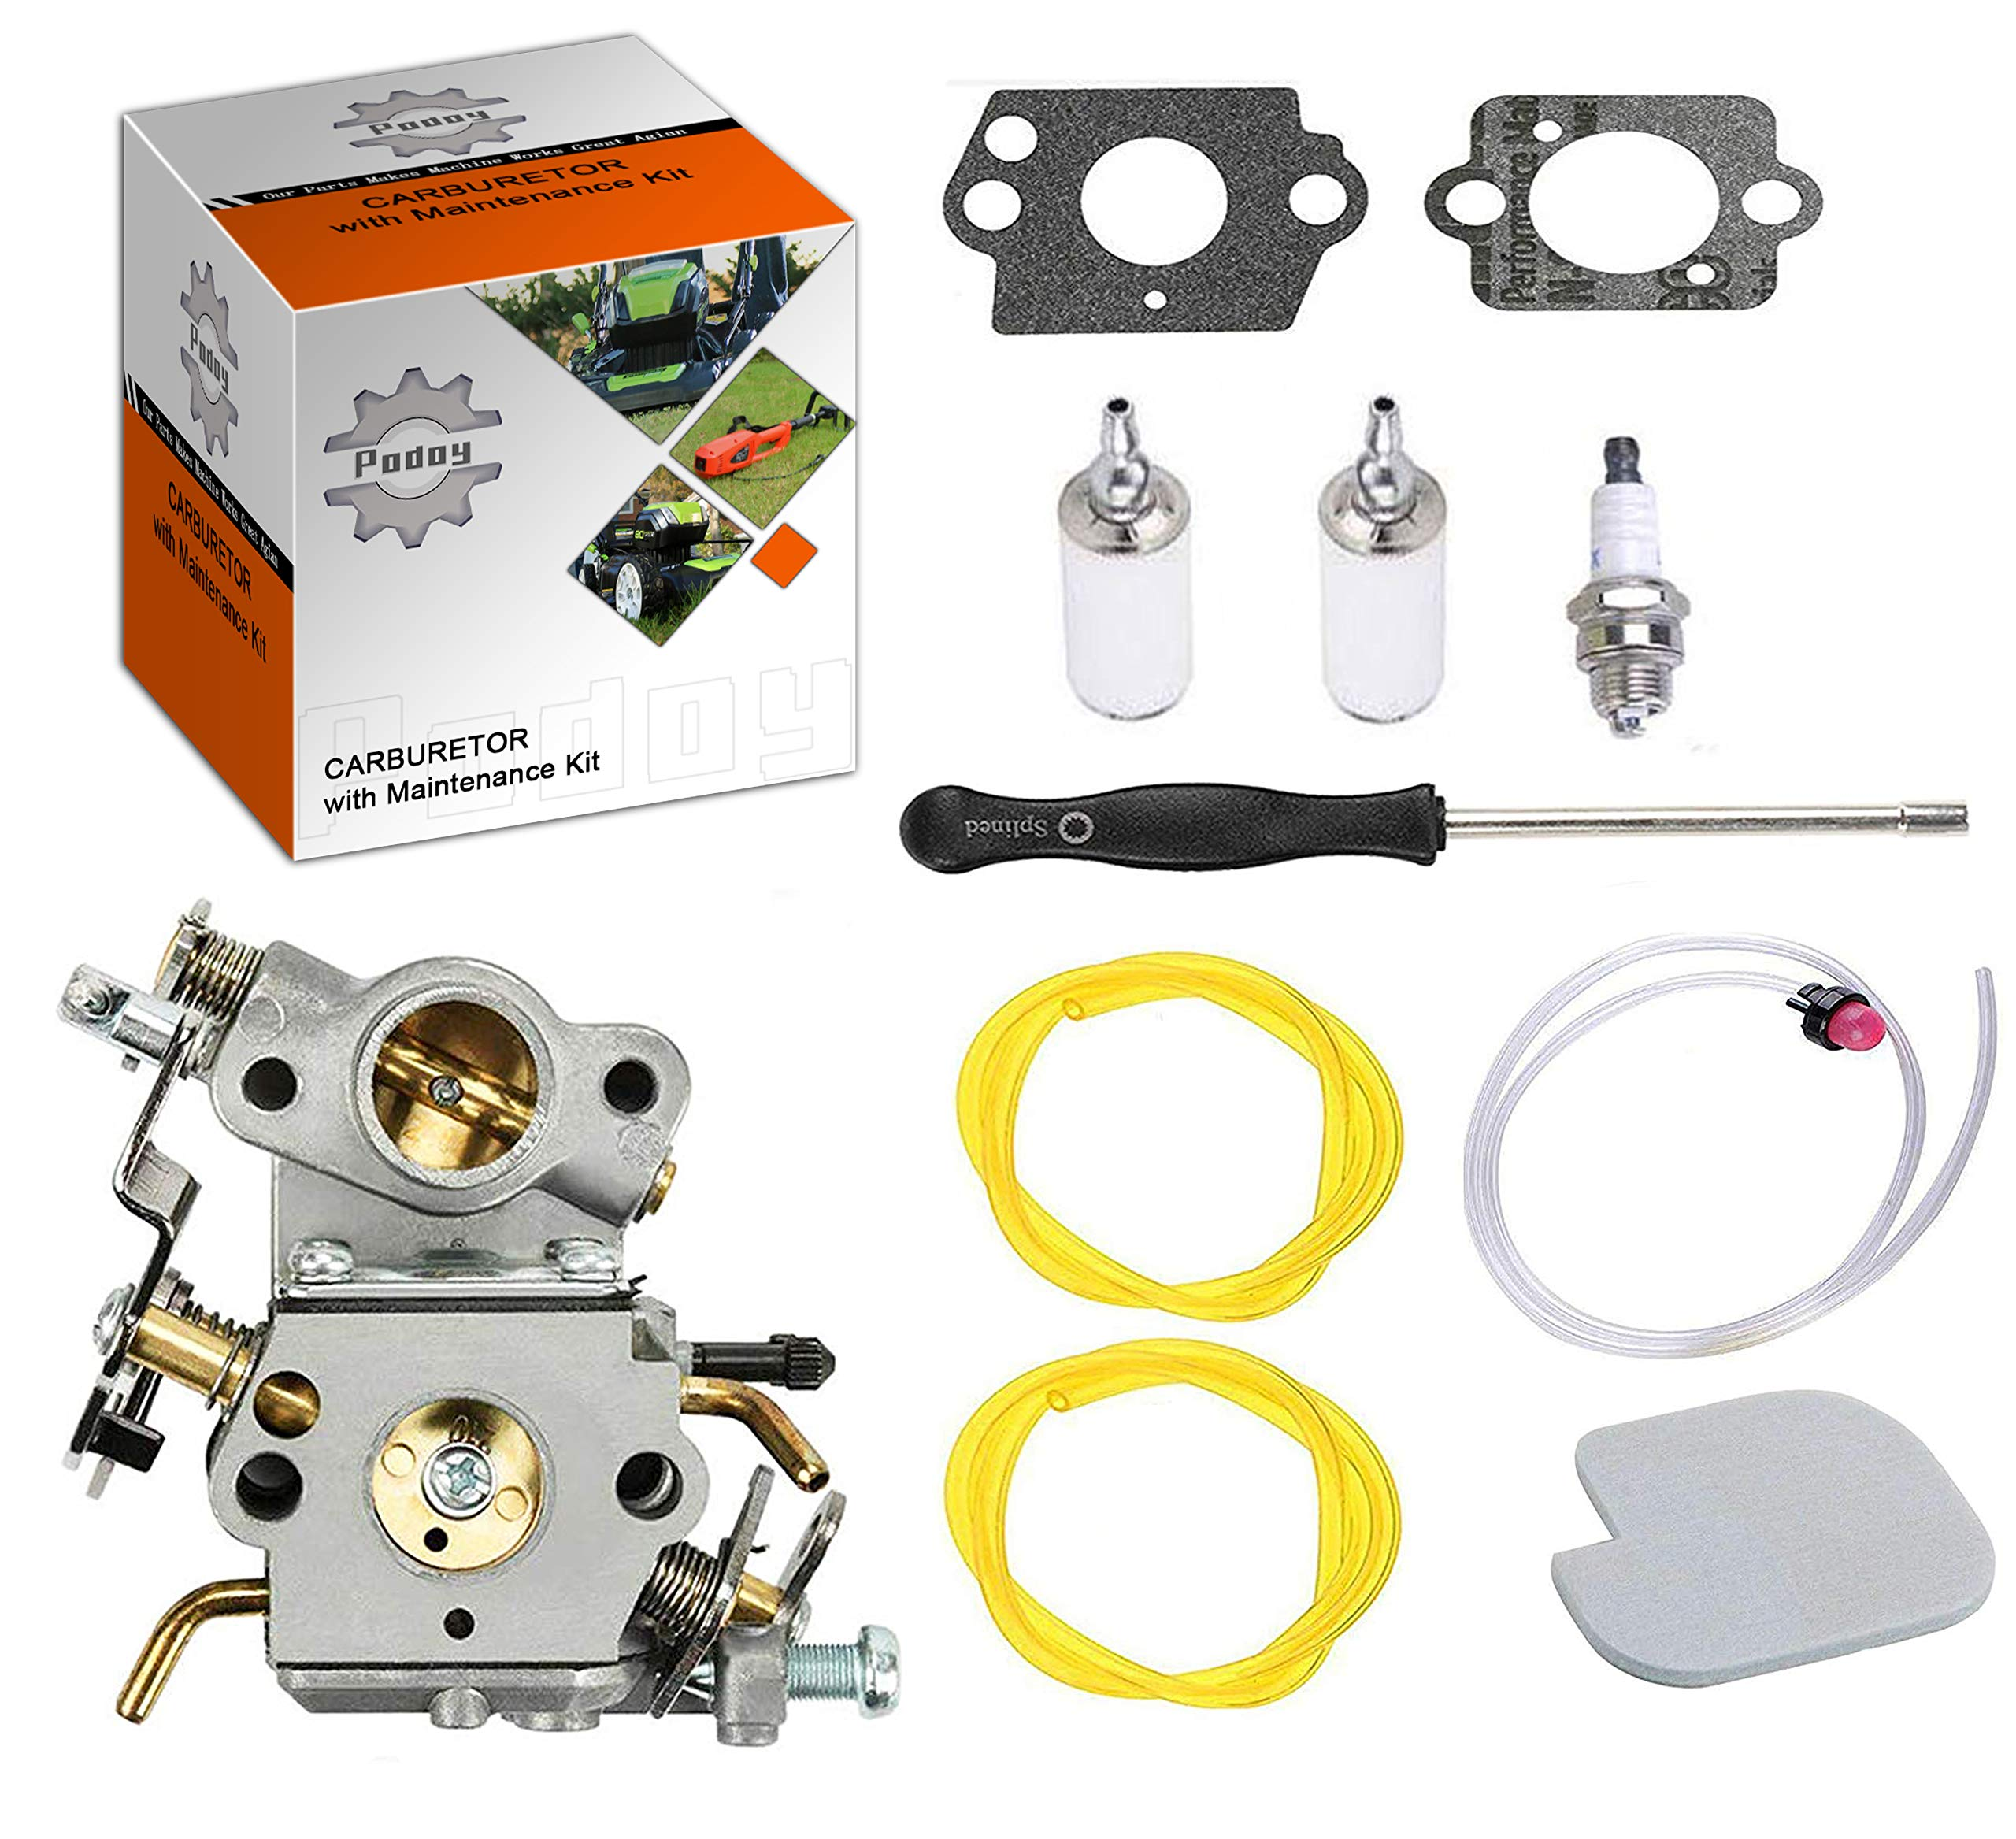 Podoy P3314 Carburetor for Poulan Chainsaw Parts PP4218A Air Fuel Filter with Adjustment Tool Tune-up Kit for P3416 P3816 P4018 PP3416 PP3516 PP3816 PP4018 PP4218 PPB3416 PPB4018 PPB4218 545070601 by Podoy